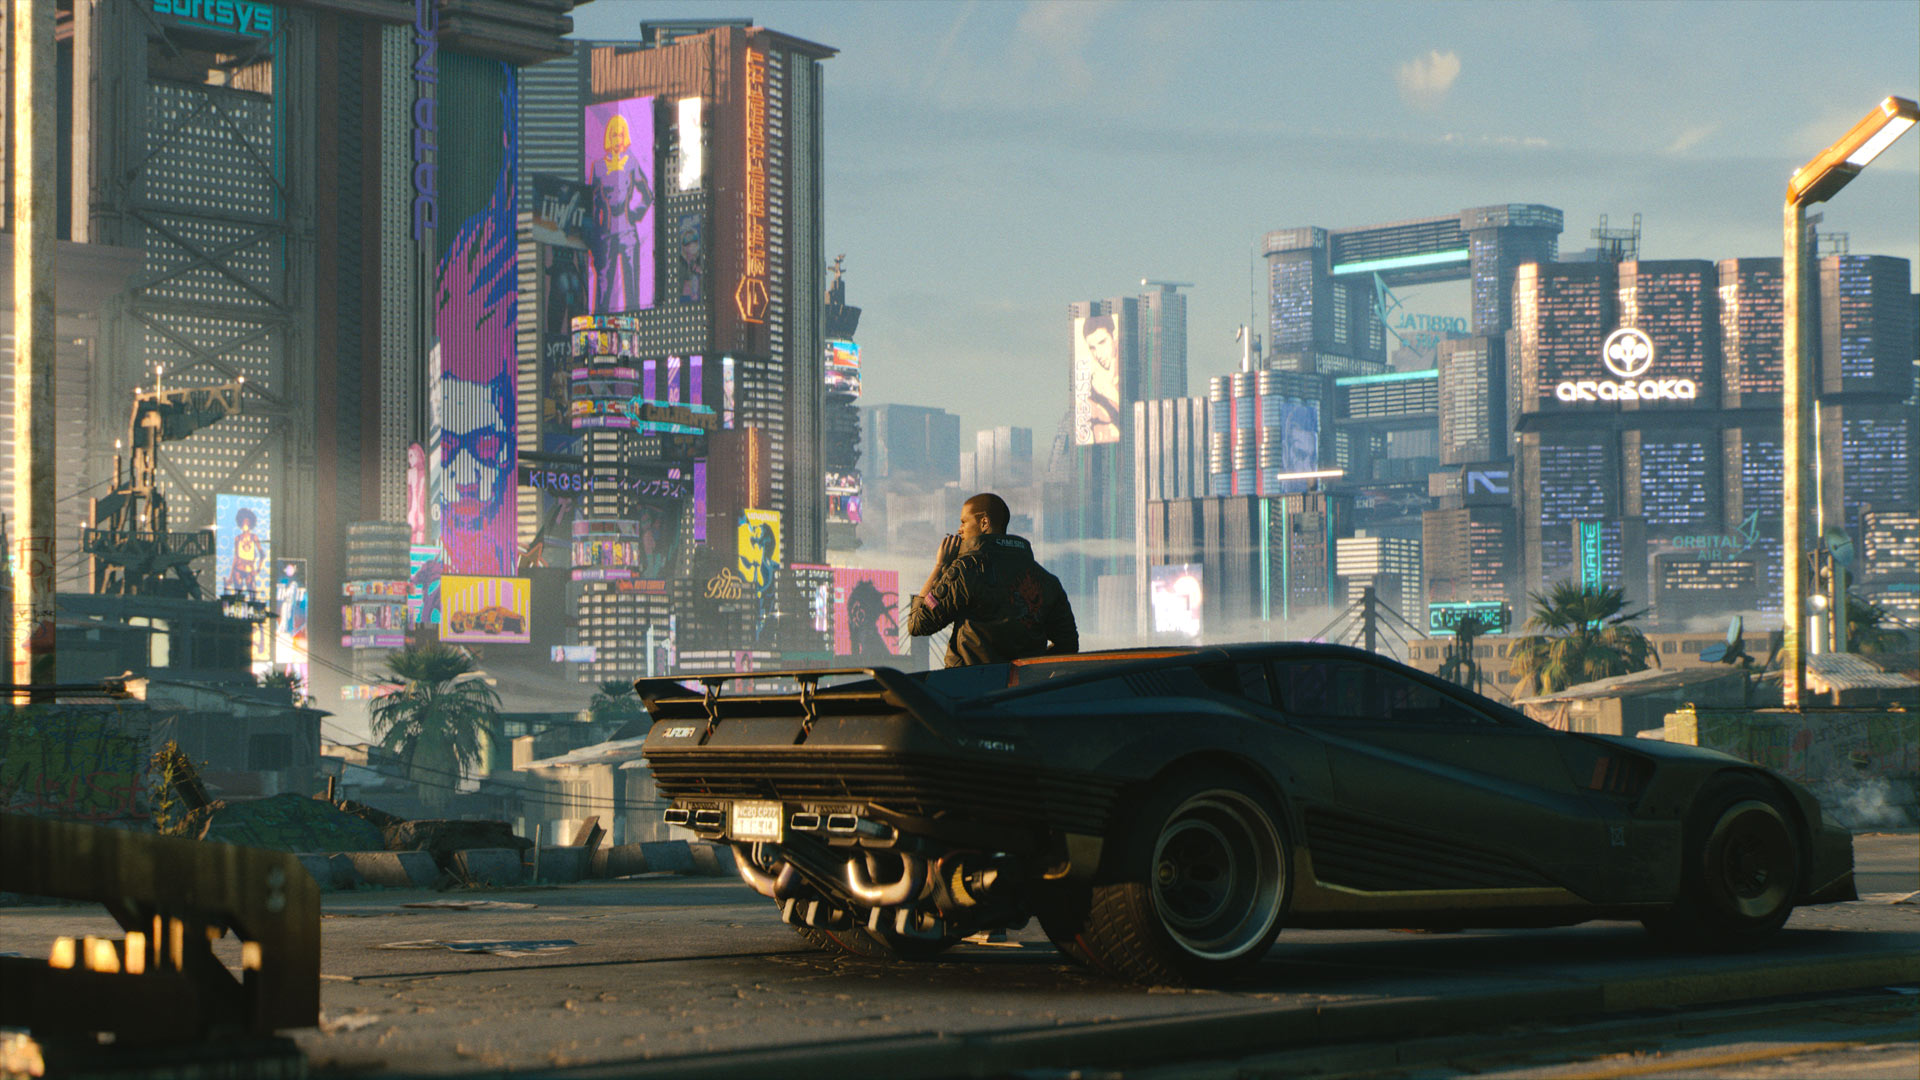 Source: Cyberpunk 2077 Release Date To Be Revealed At E3 2019